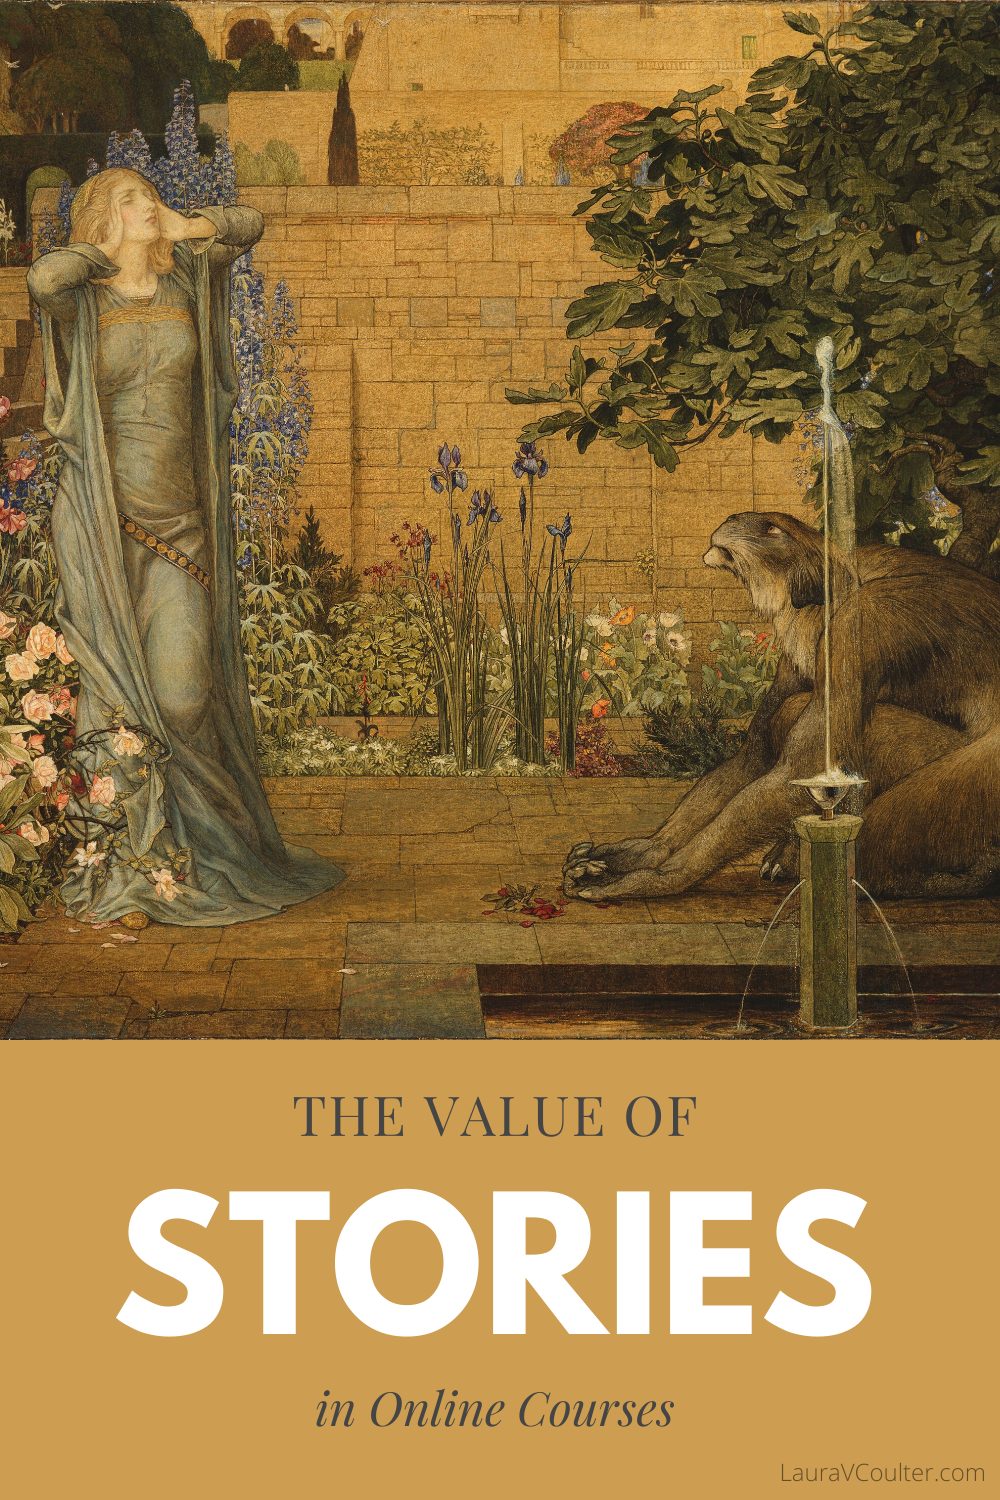 The value of stories in online courses lies in a story's ability to engage and connect learners.